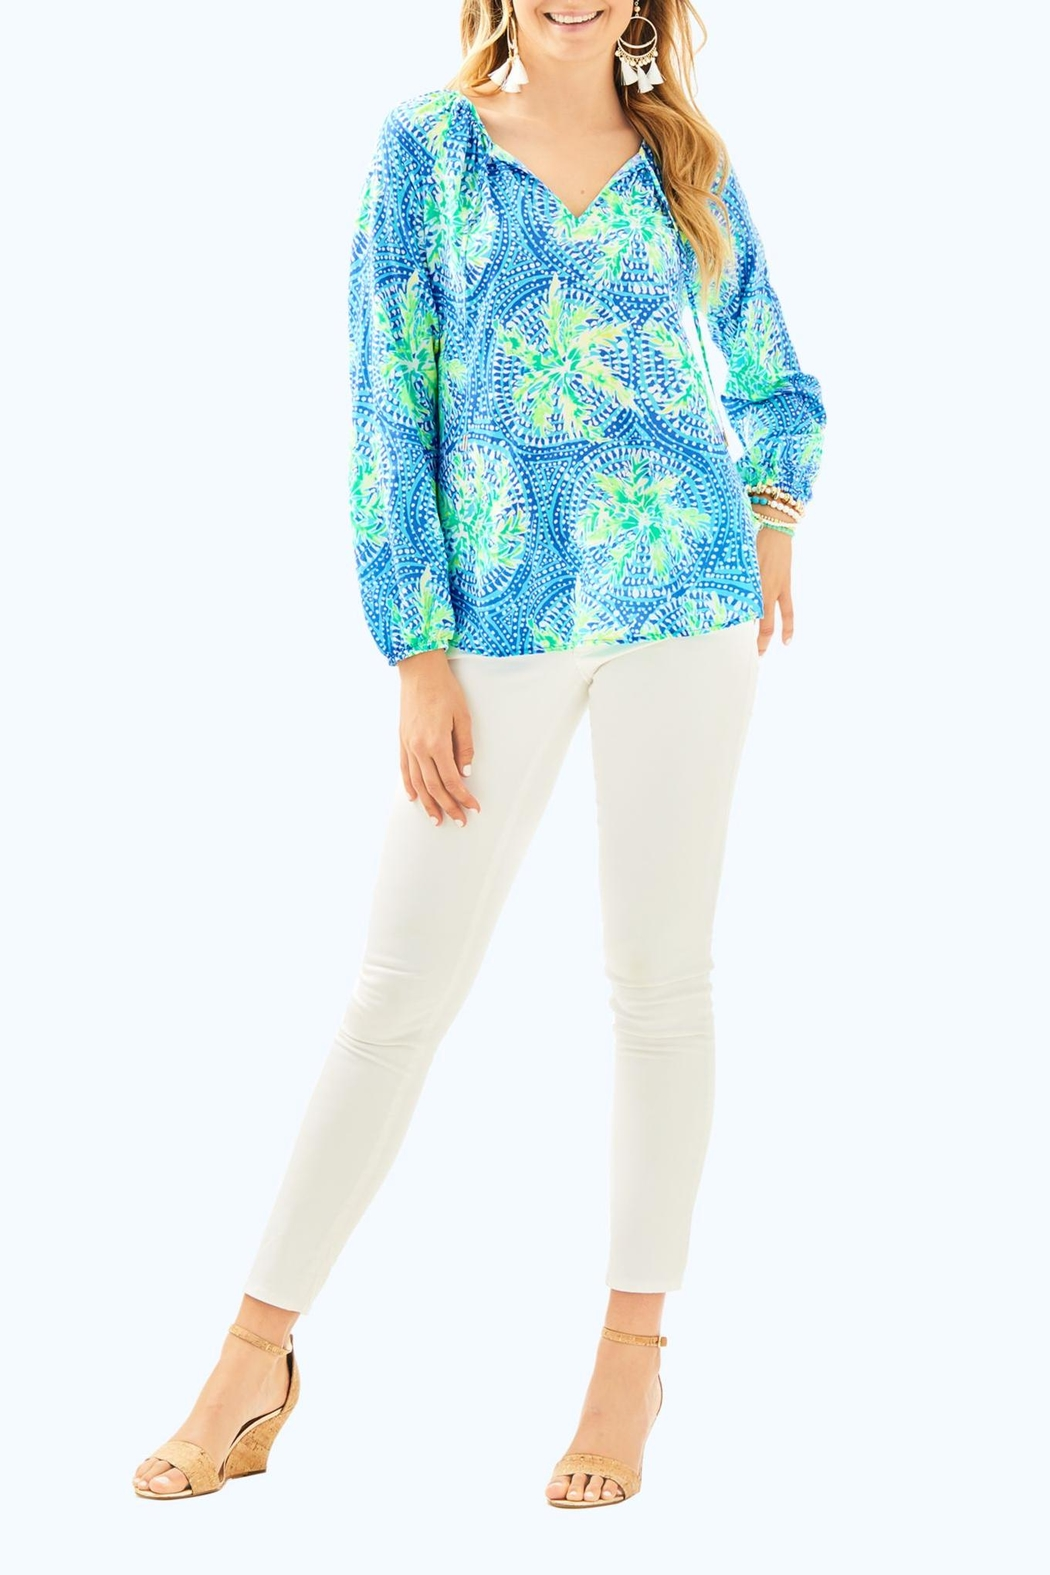 Lilly Pulitzer Willa Tunic Top - Side Cropped Image